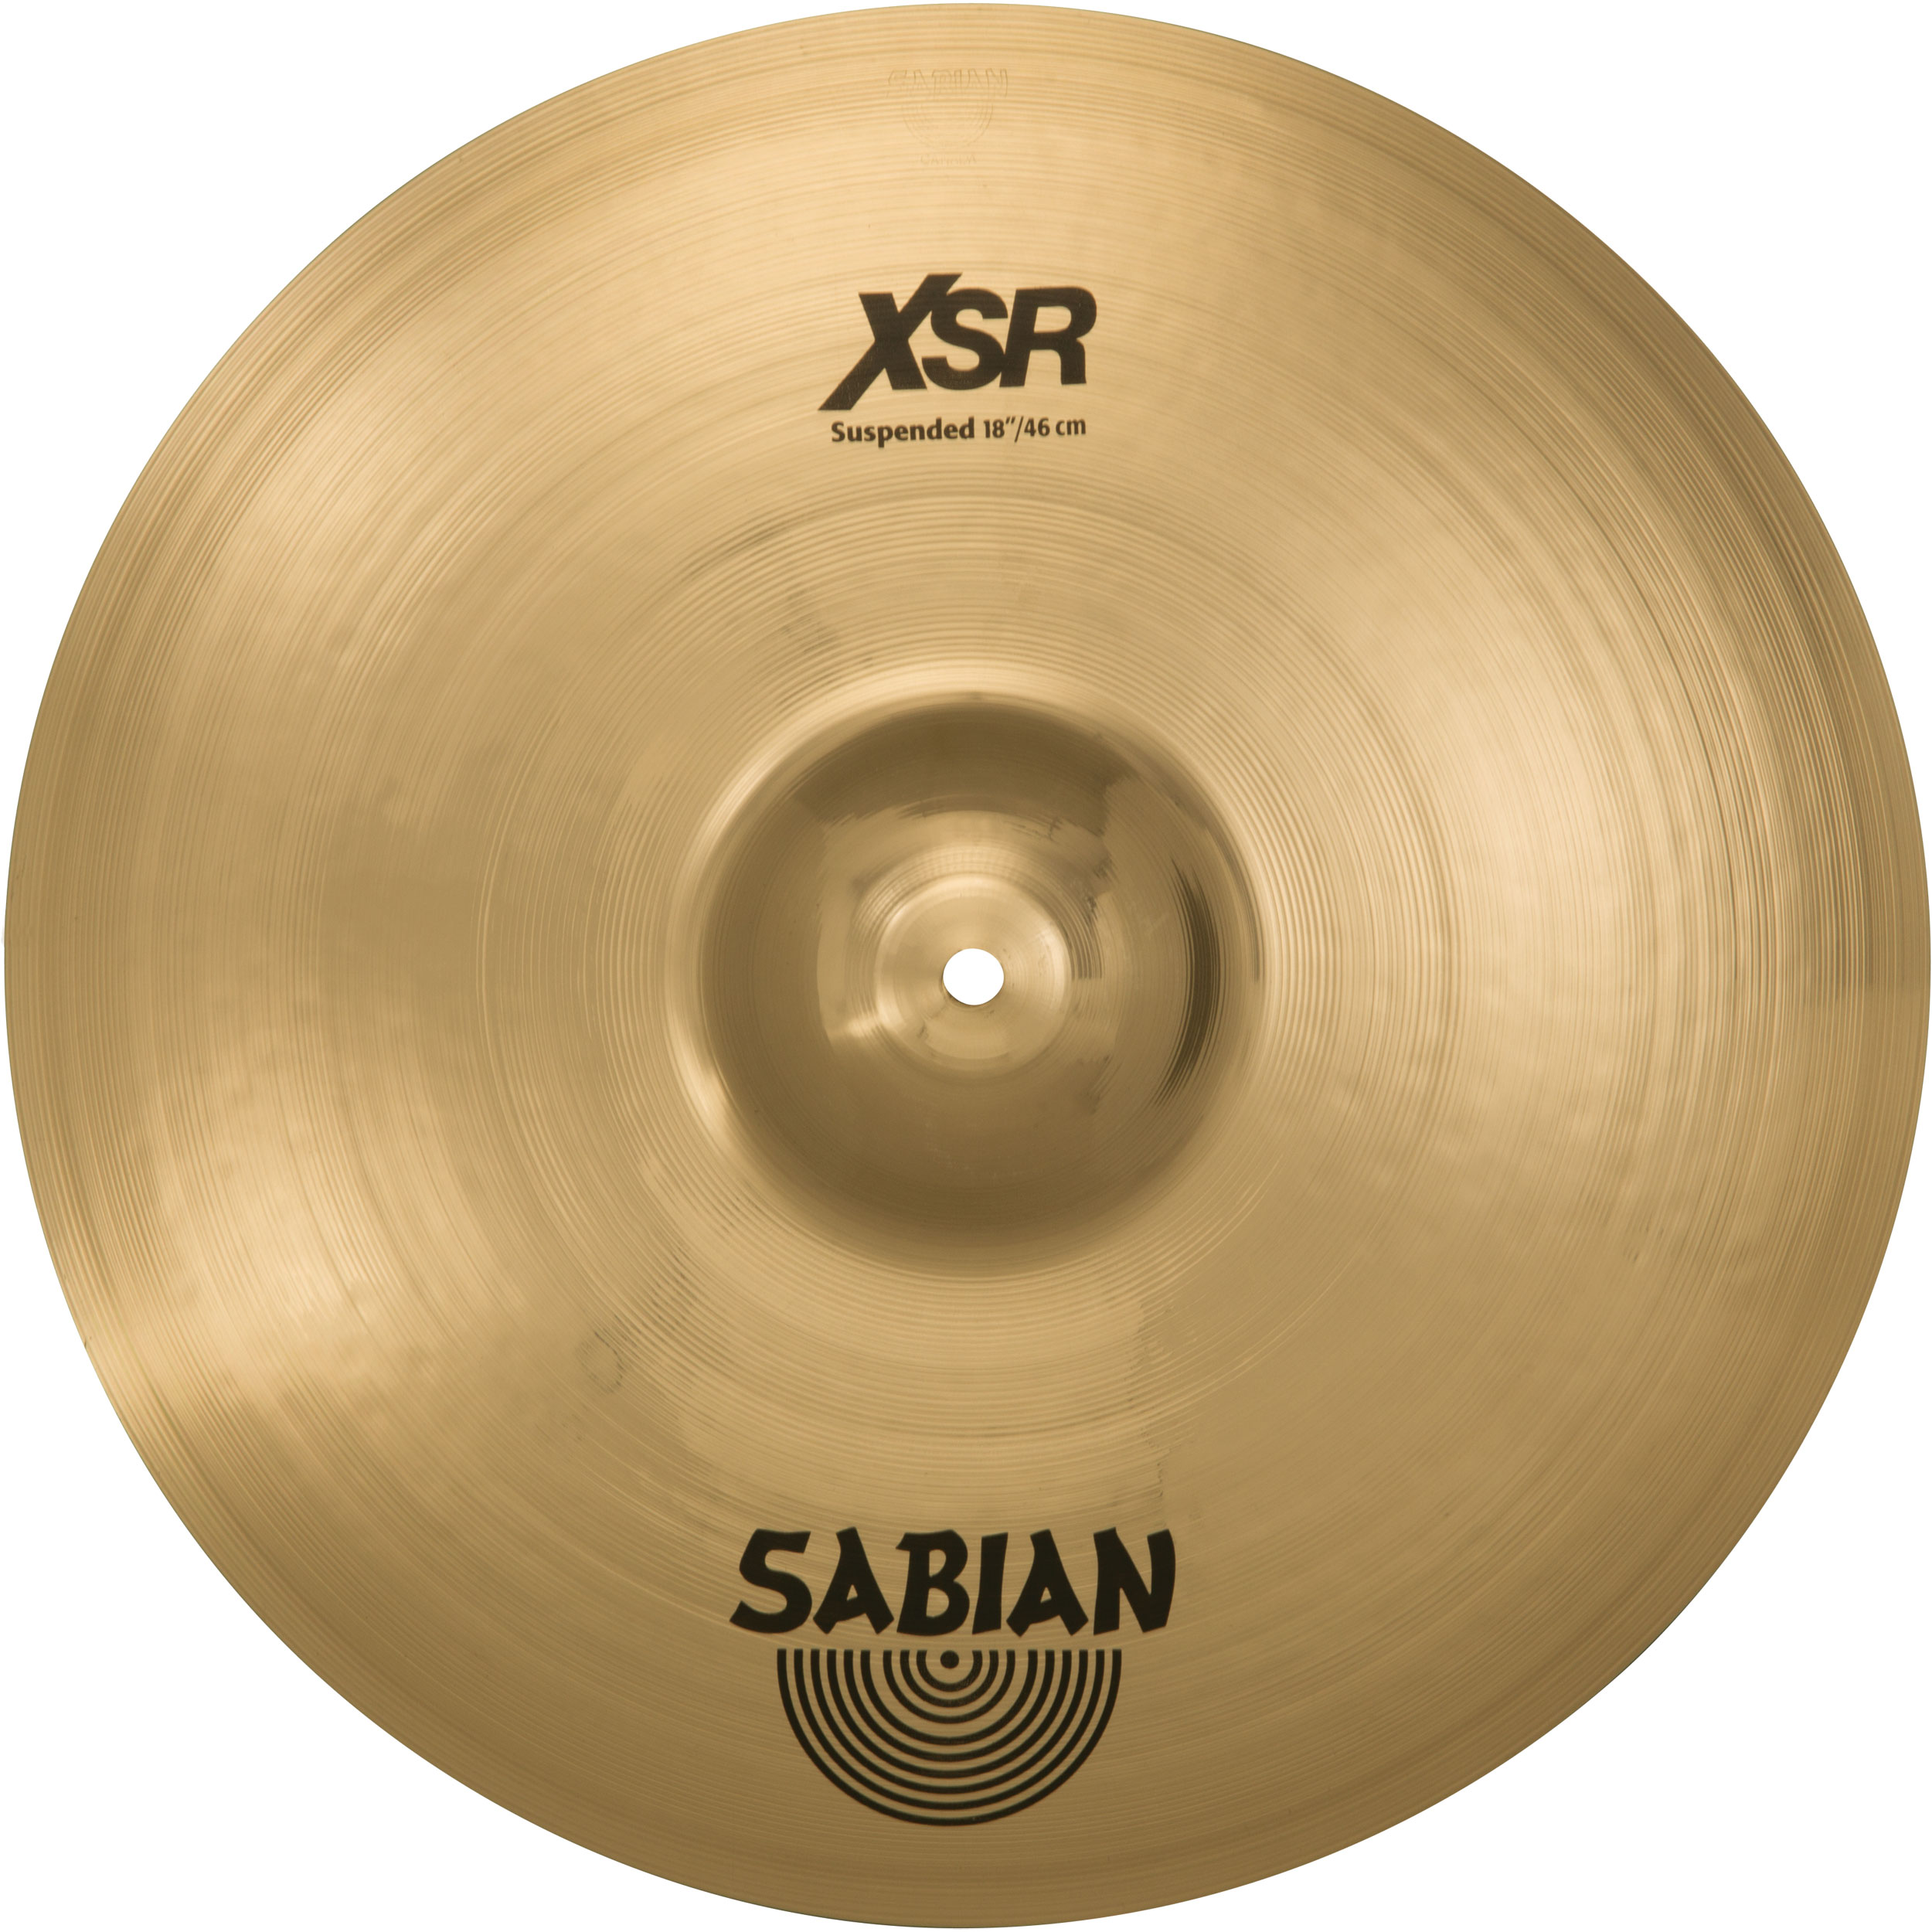 "Sabian 18"" XSR Suspended Cymbal"